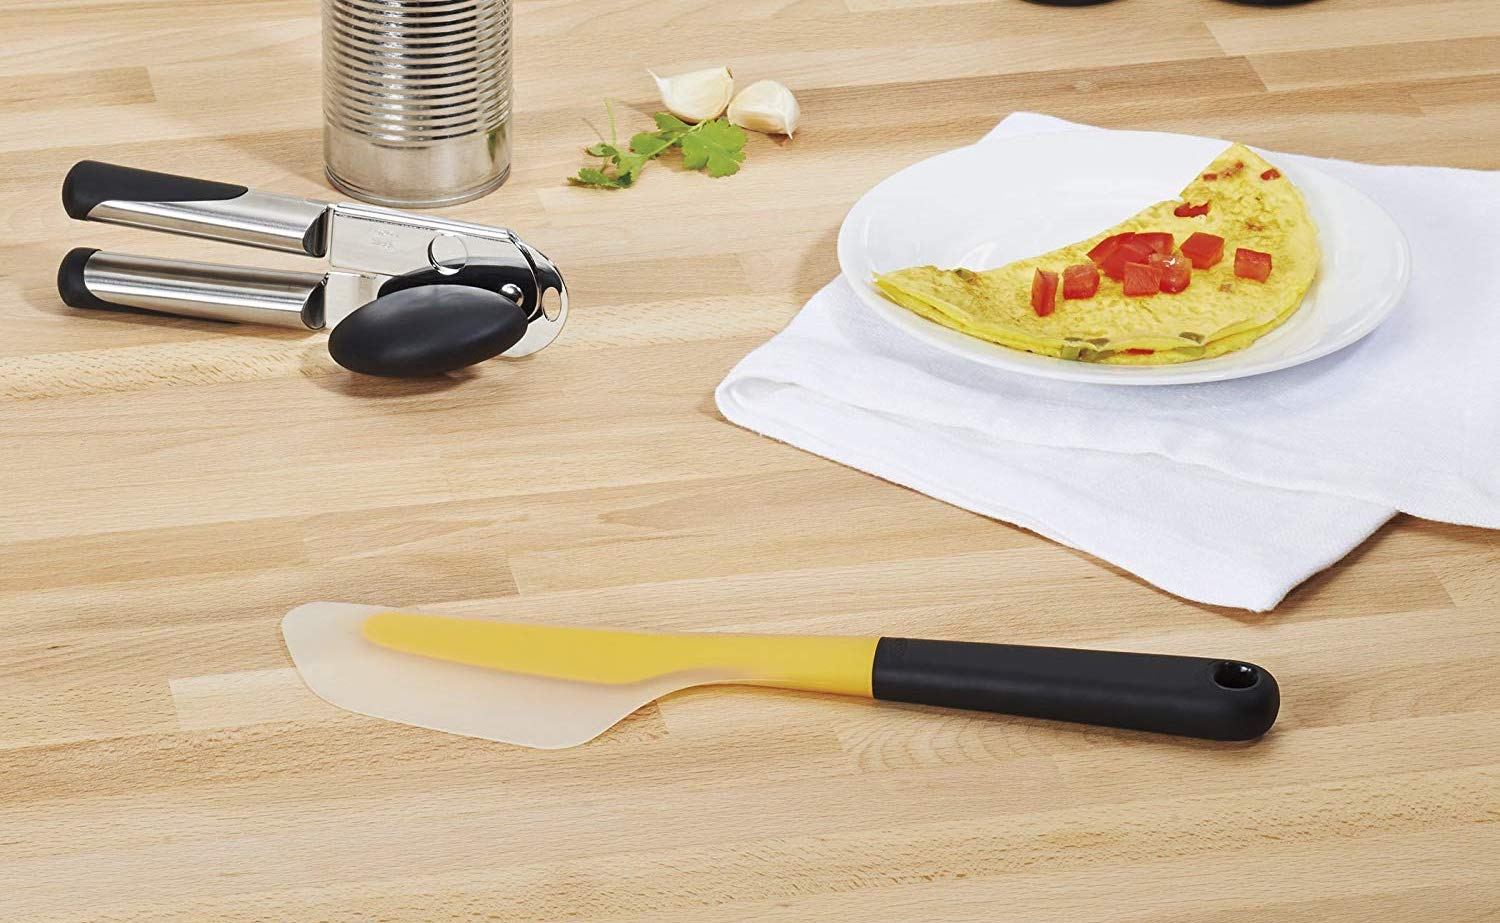 Oxo Good Grips Flip and Fold Omelet Turner Silicone Spatula flips your food with ease